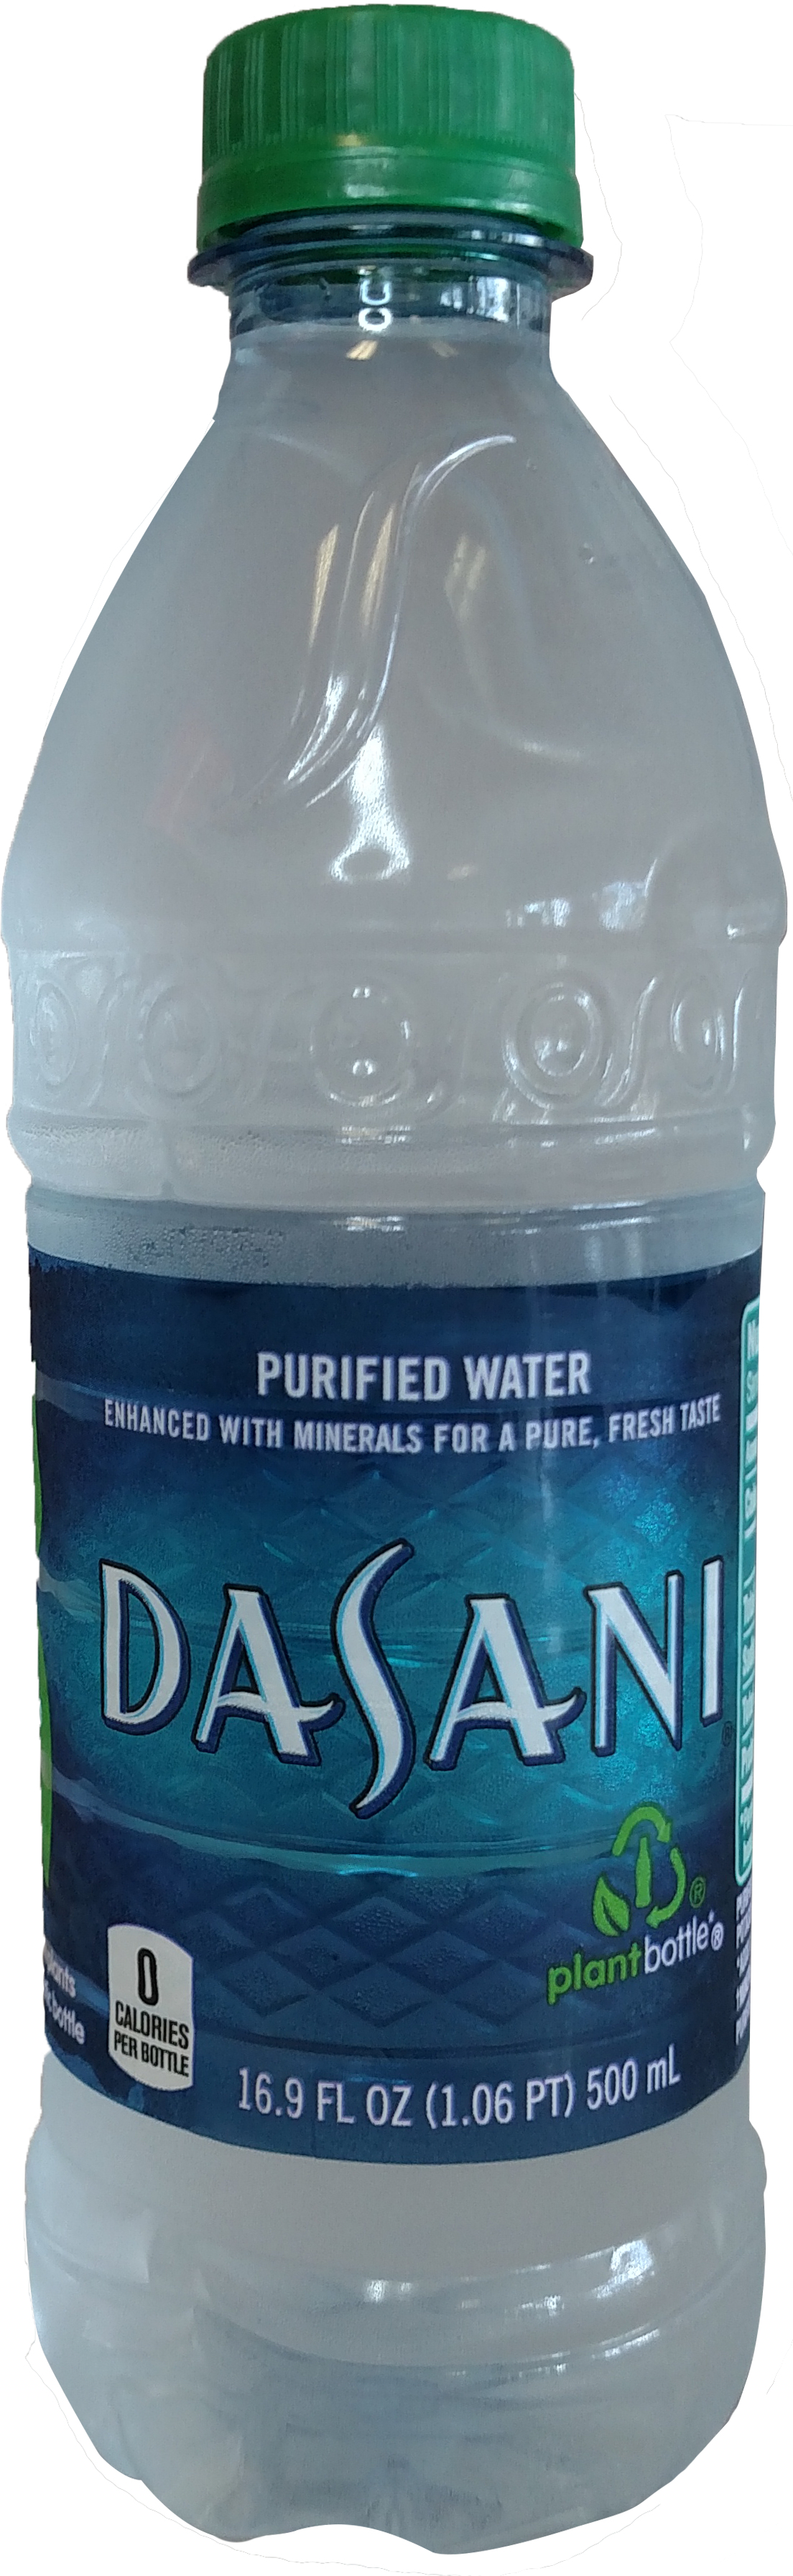 Beverages Pizzanos Pizza Lake Wales - Dasani Purified Water - Single Item, 20 Fl Oz (1104x3586), Png Download